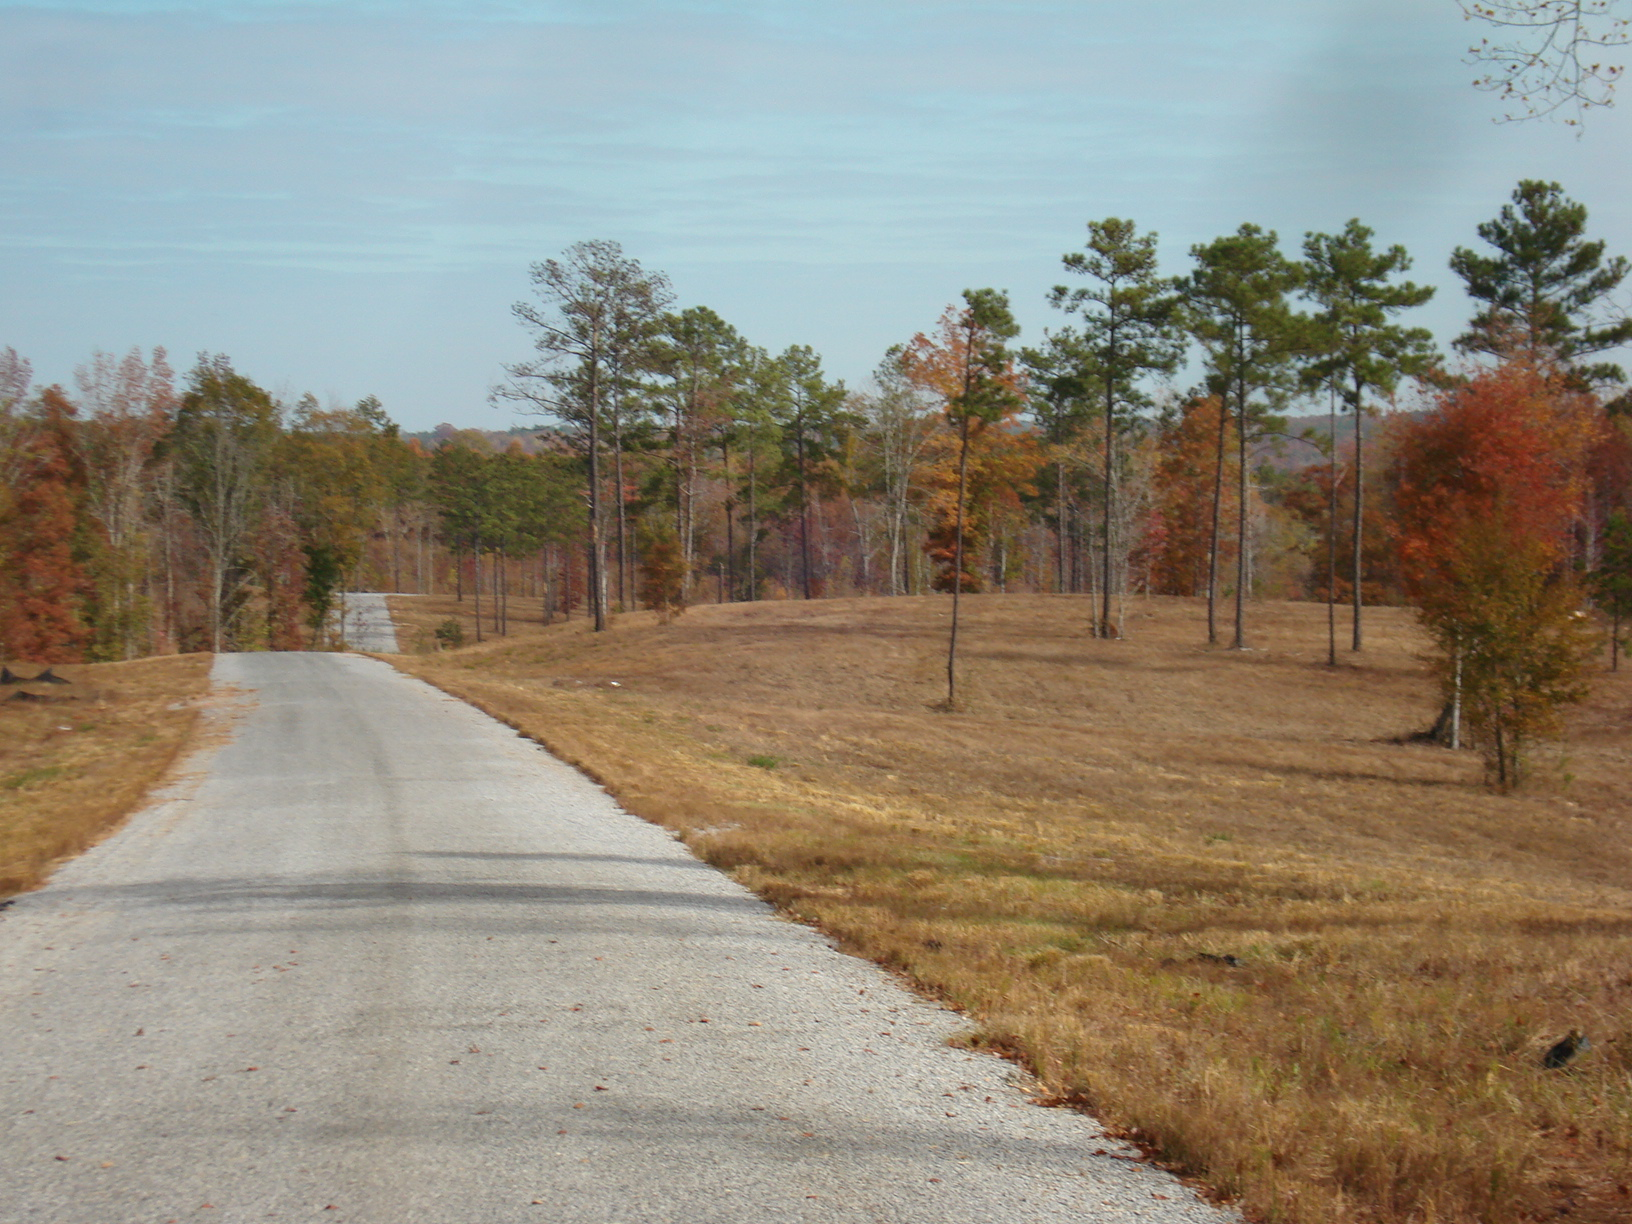 looking east down the private gravel road. Tract 3 on the right